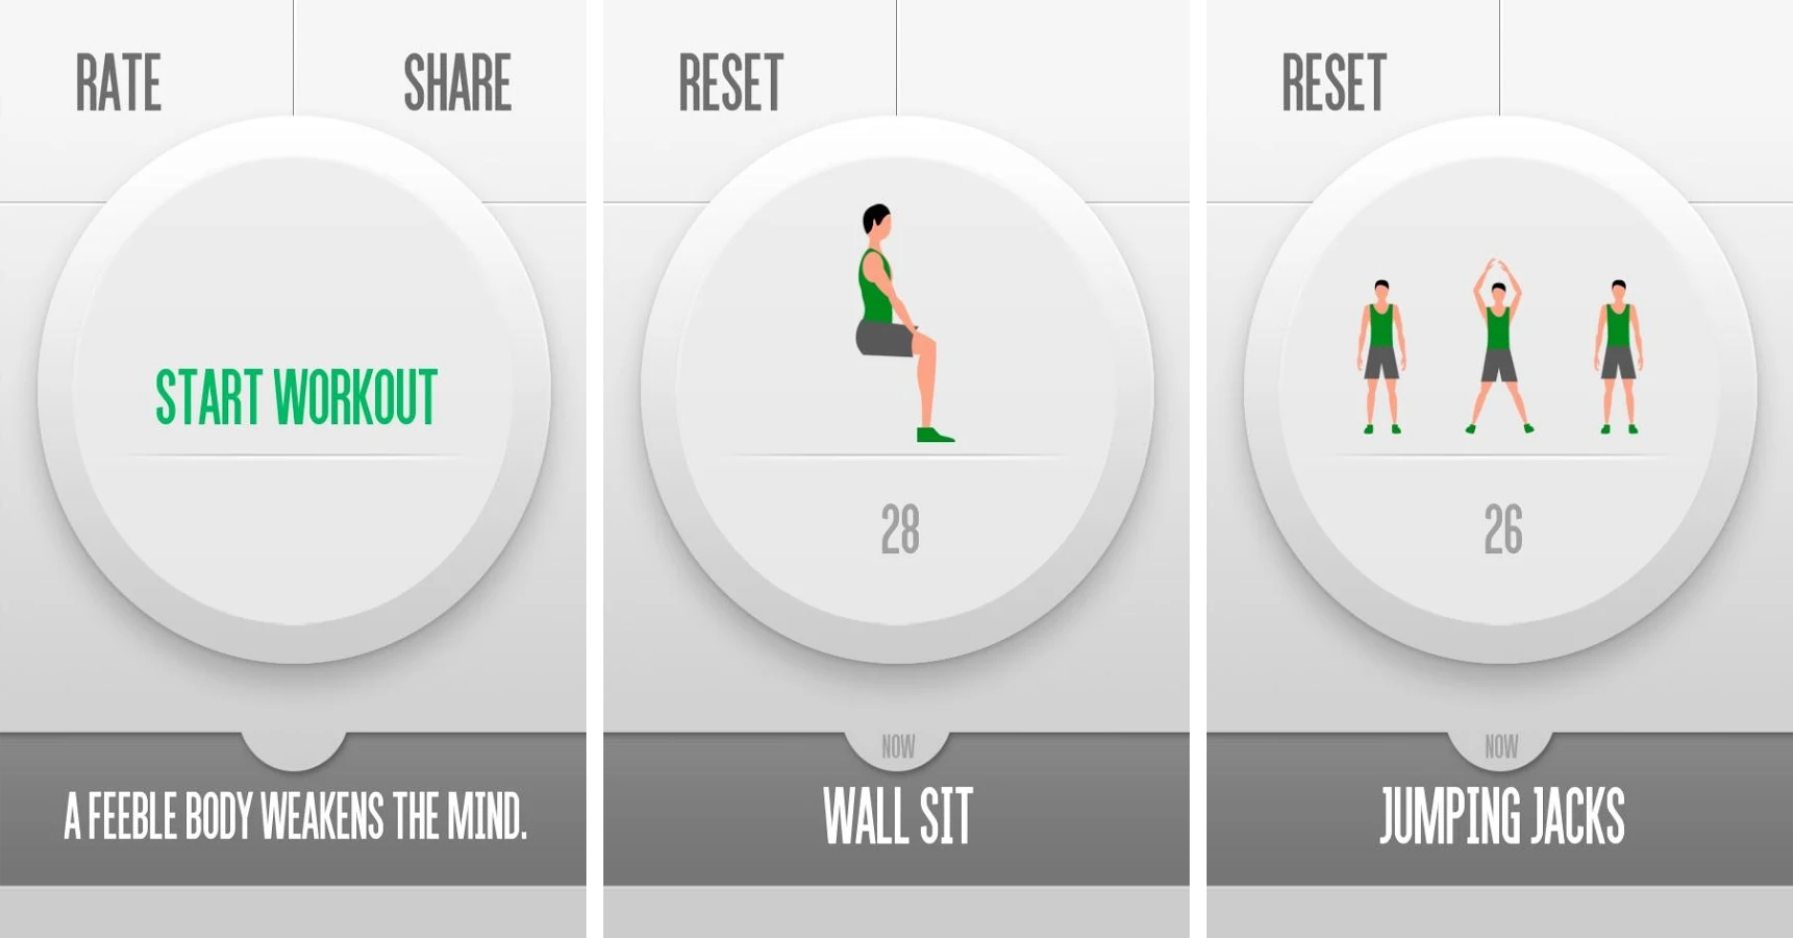 the most minimal 7-minute workout app